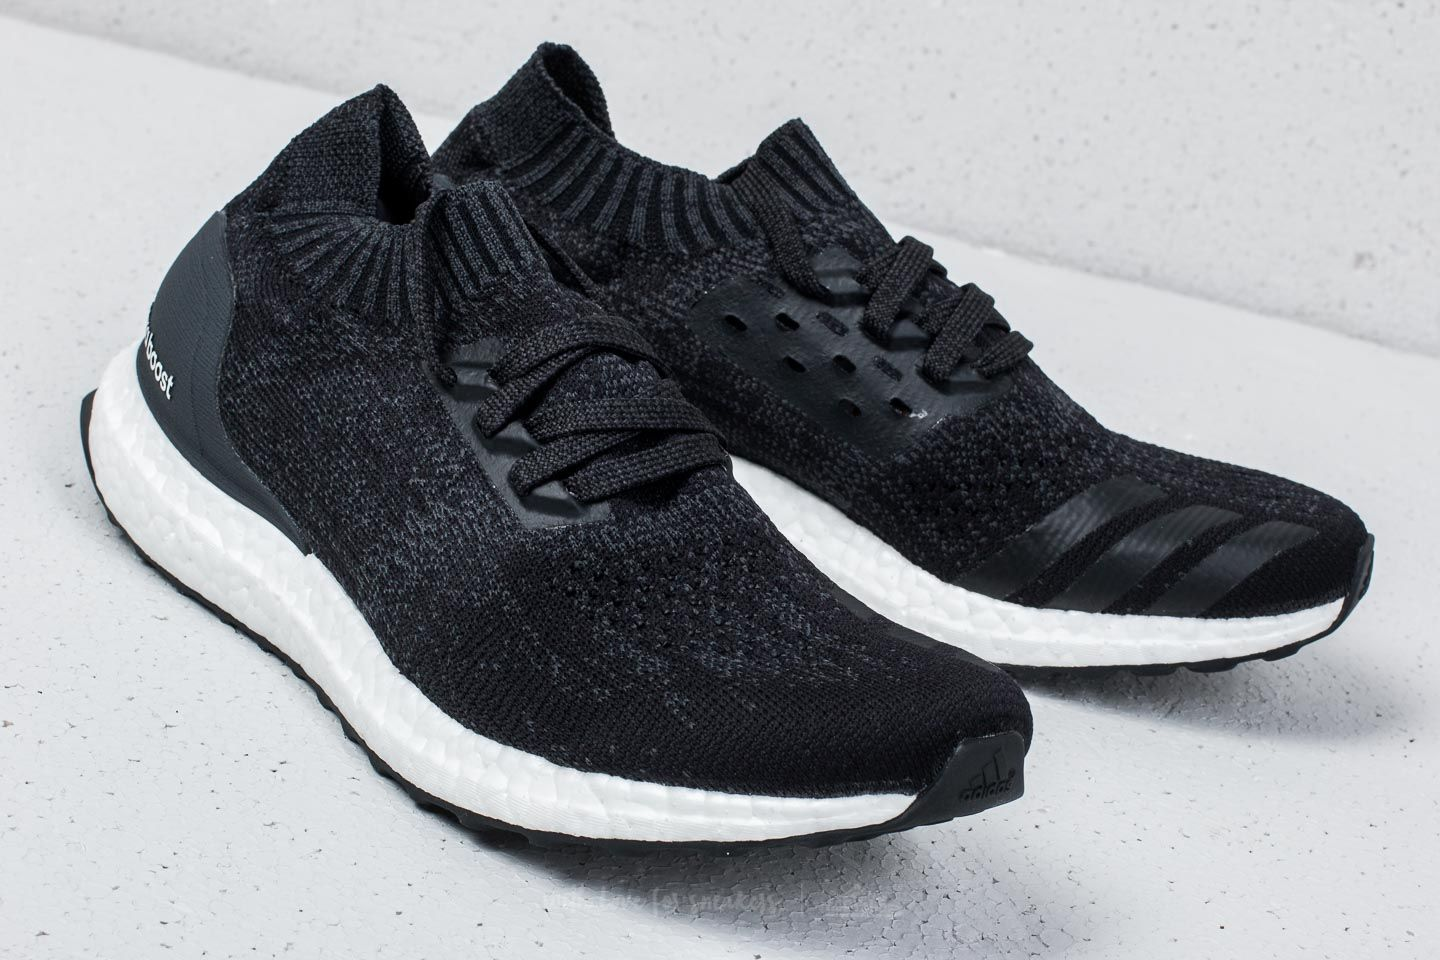 271a1fbc019 ... coupon code for adidas ultraboost uncaged carbon core black grey three  at a great price 211